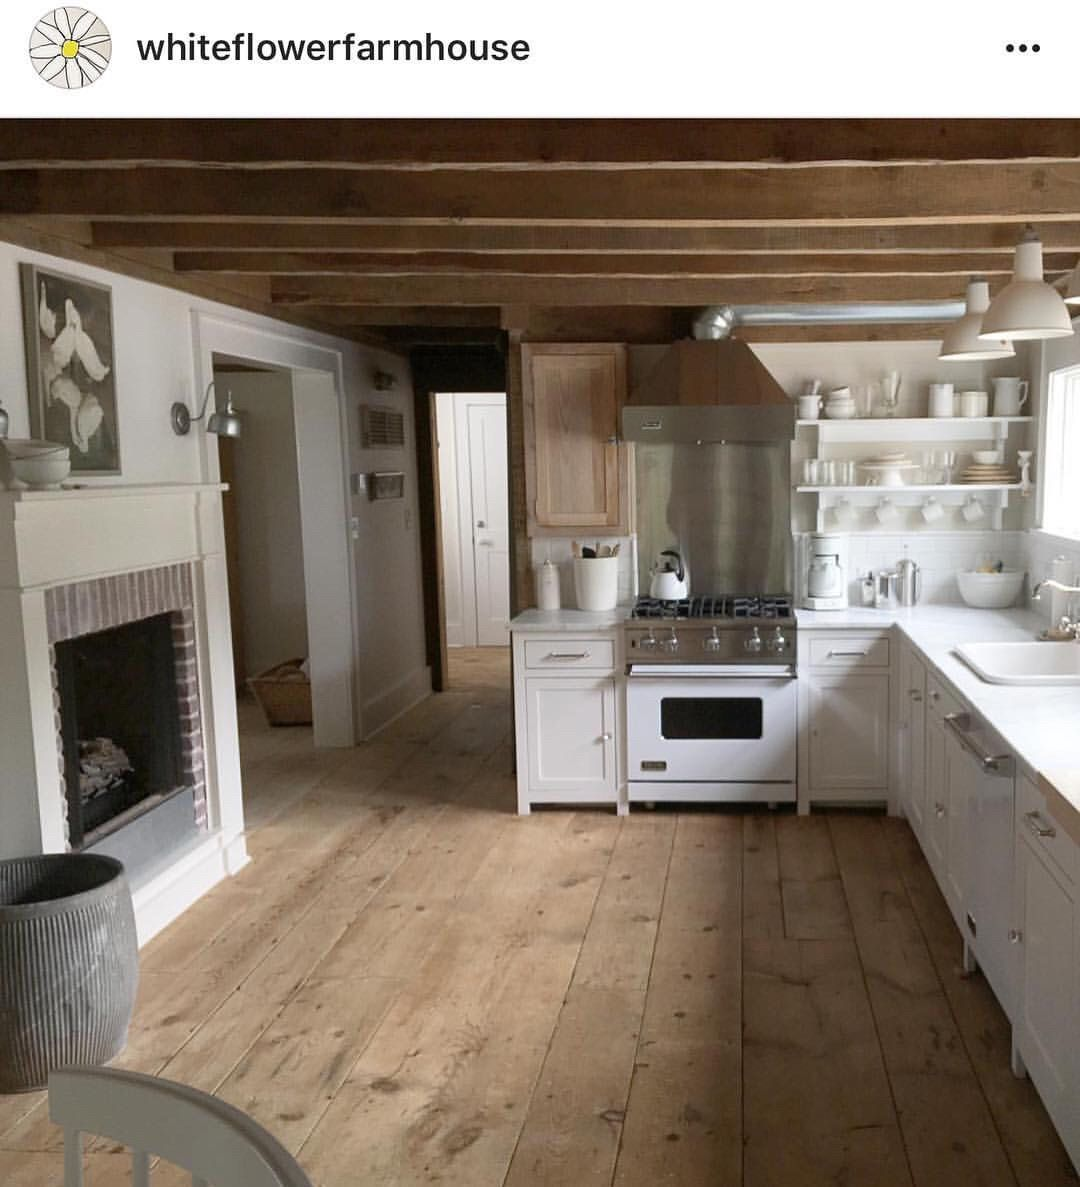 Oldfarmhouse I Love Everything About This Dreamywhitelifestyle Instagram Cottage Kitchens Rustic Farmhouse Fireplace Home Kitchens